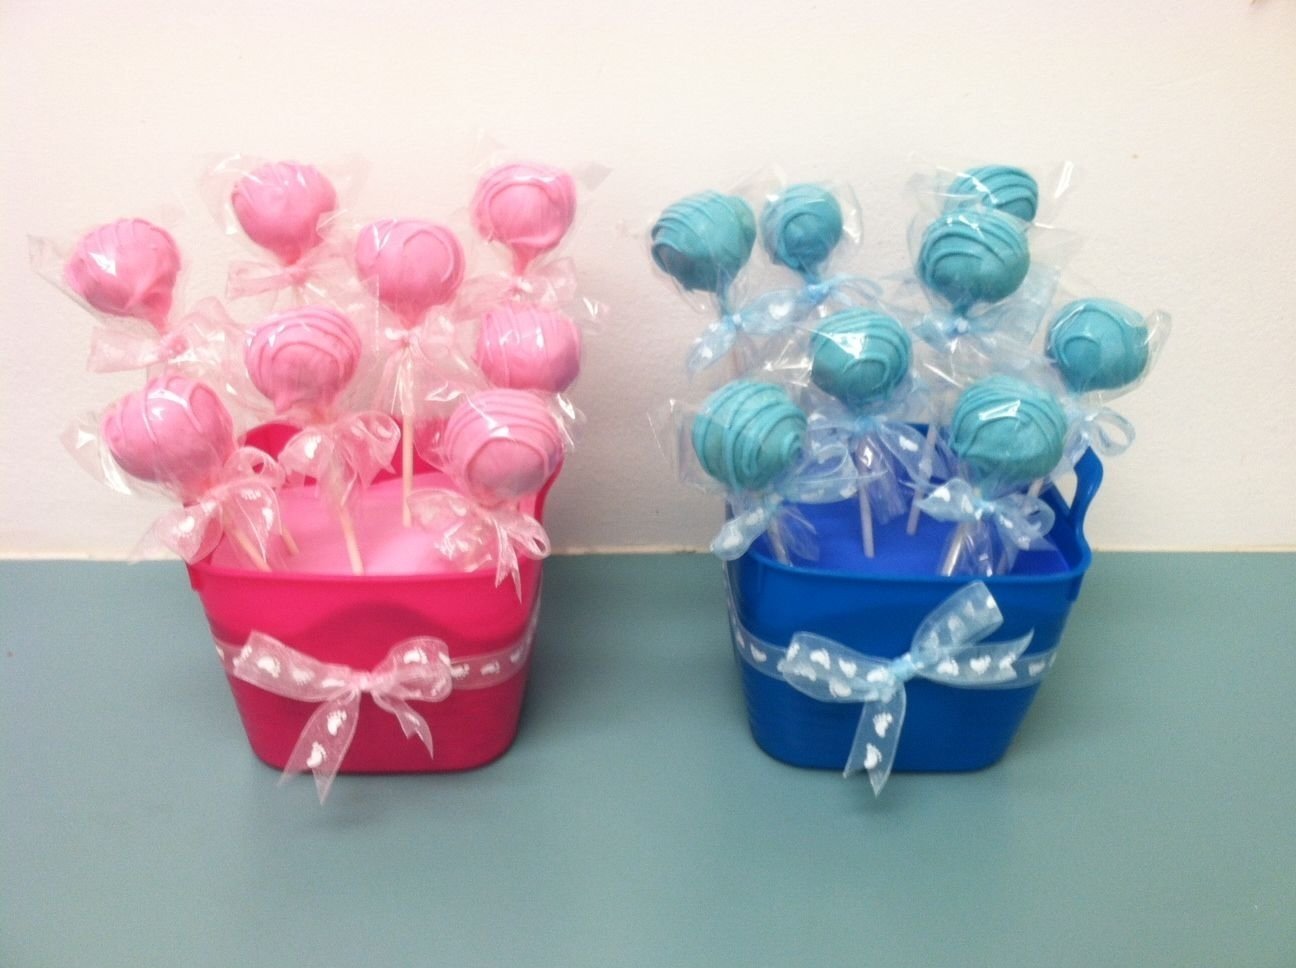 10 Nice Cake Pop Ideas For Baby Shower easy baby shower food ideas cp august 8 2012 full size is 2020